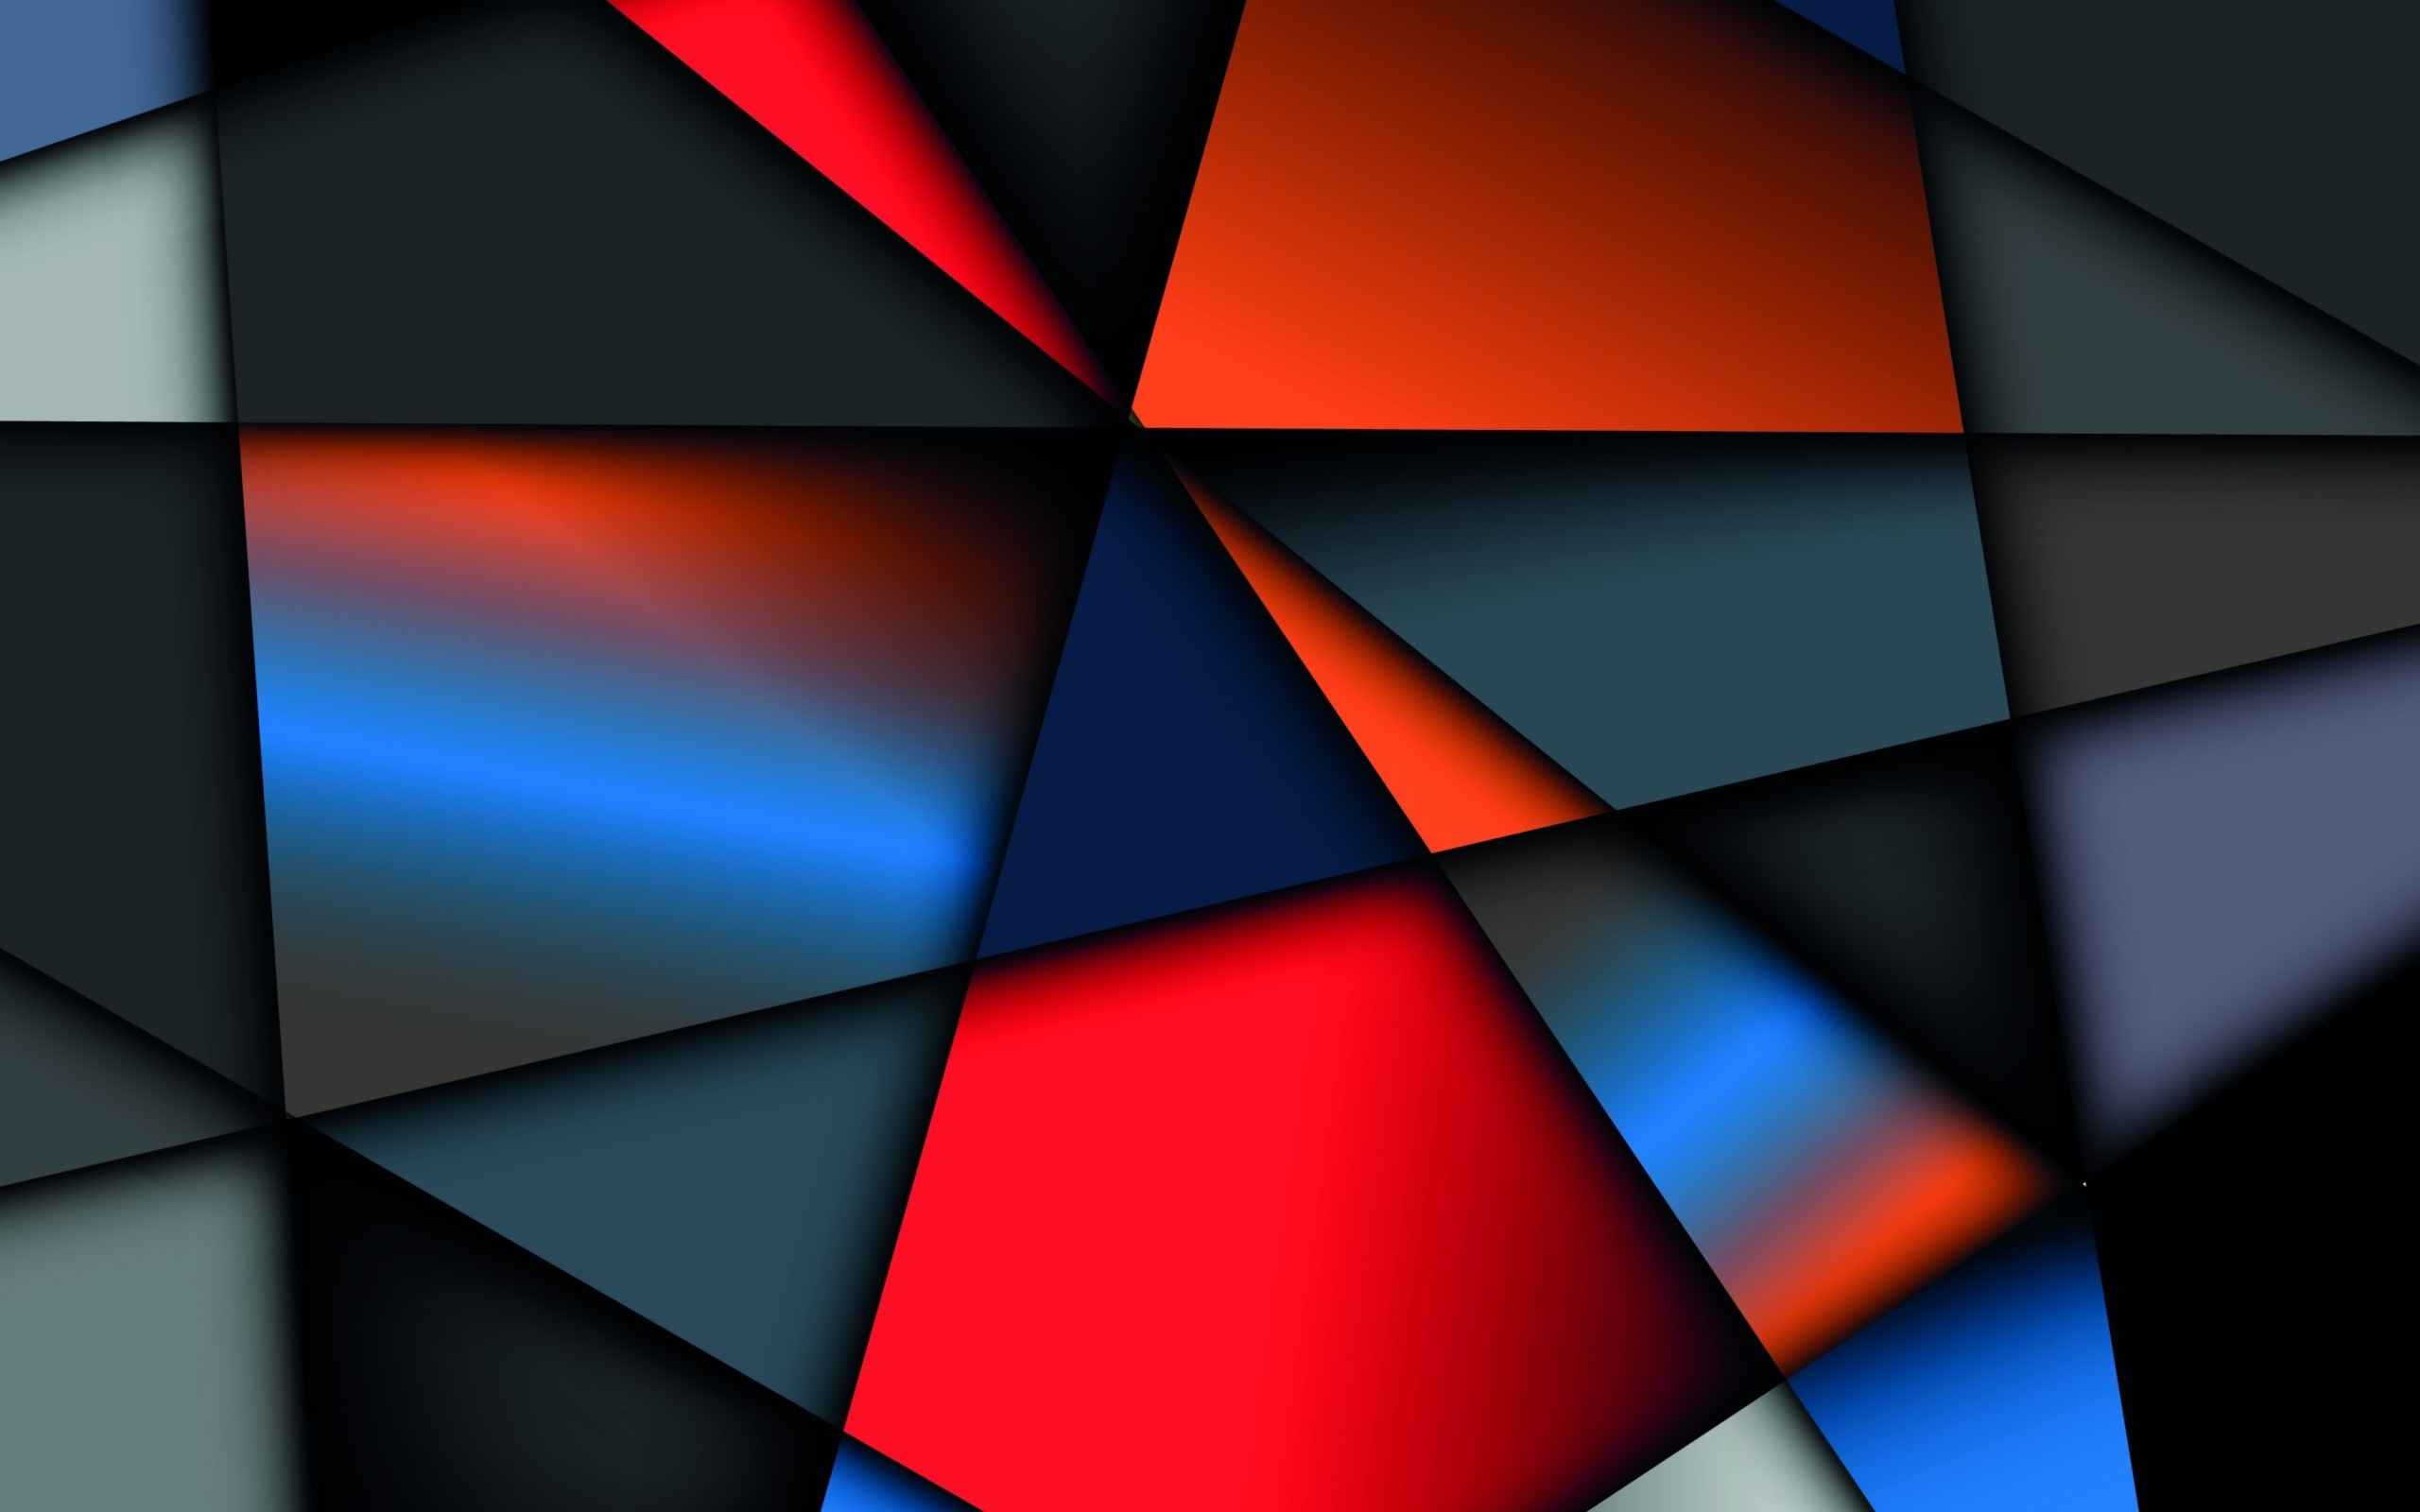 4k Abstract Wallpaper Background 62800 2560x1600px